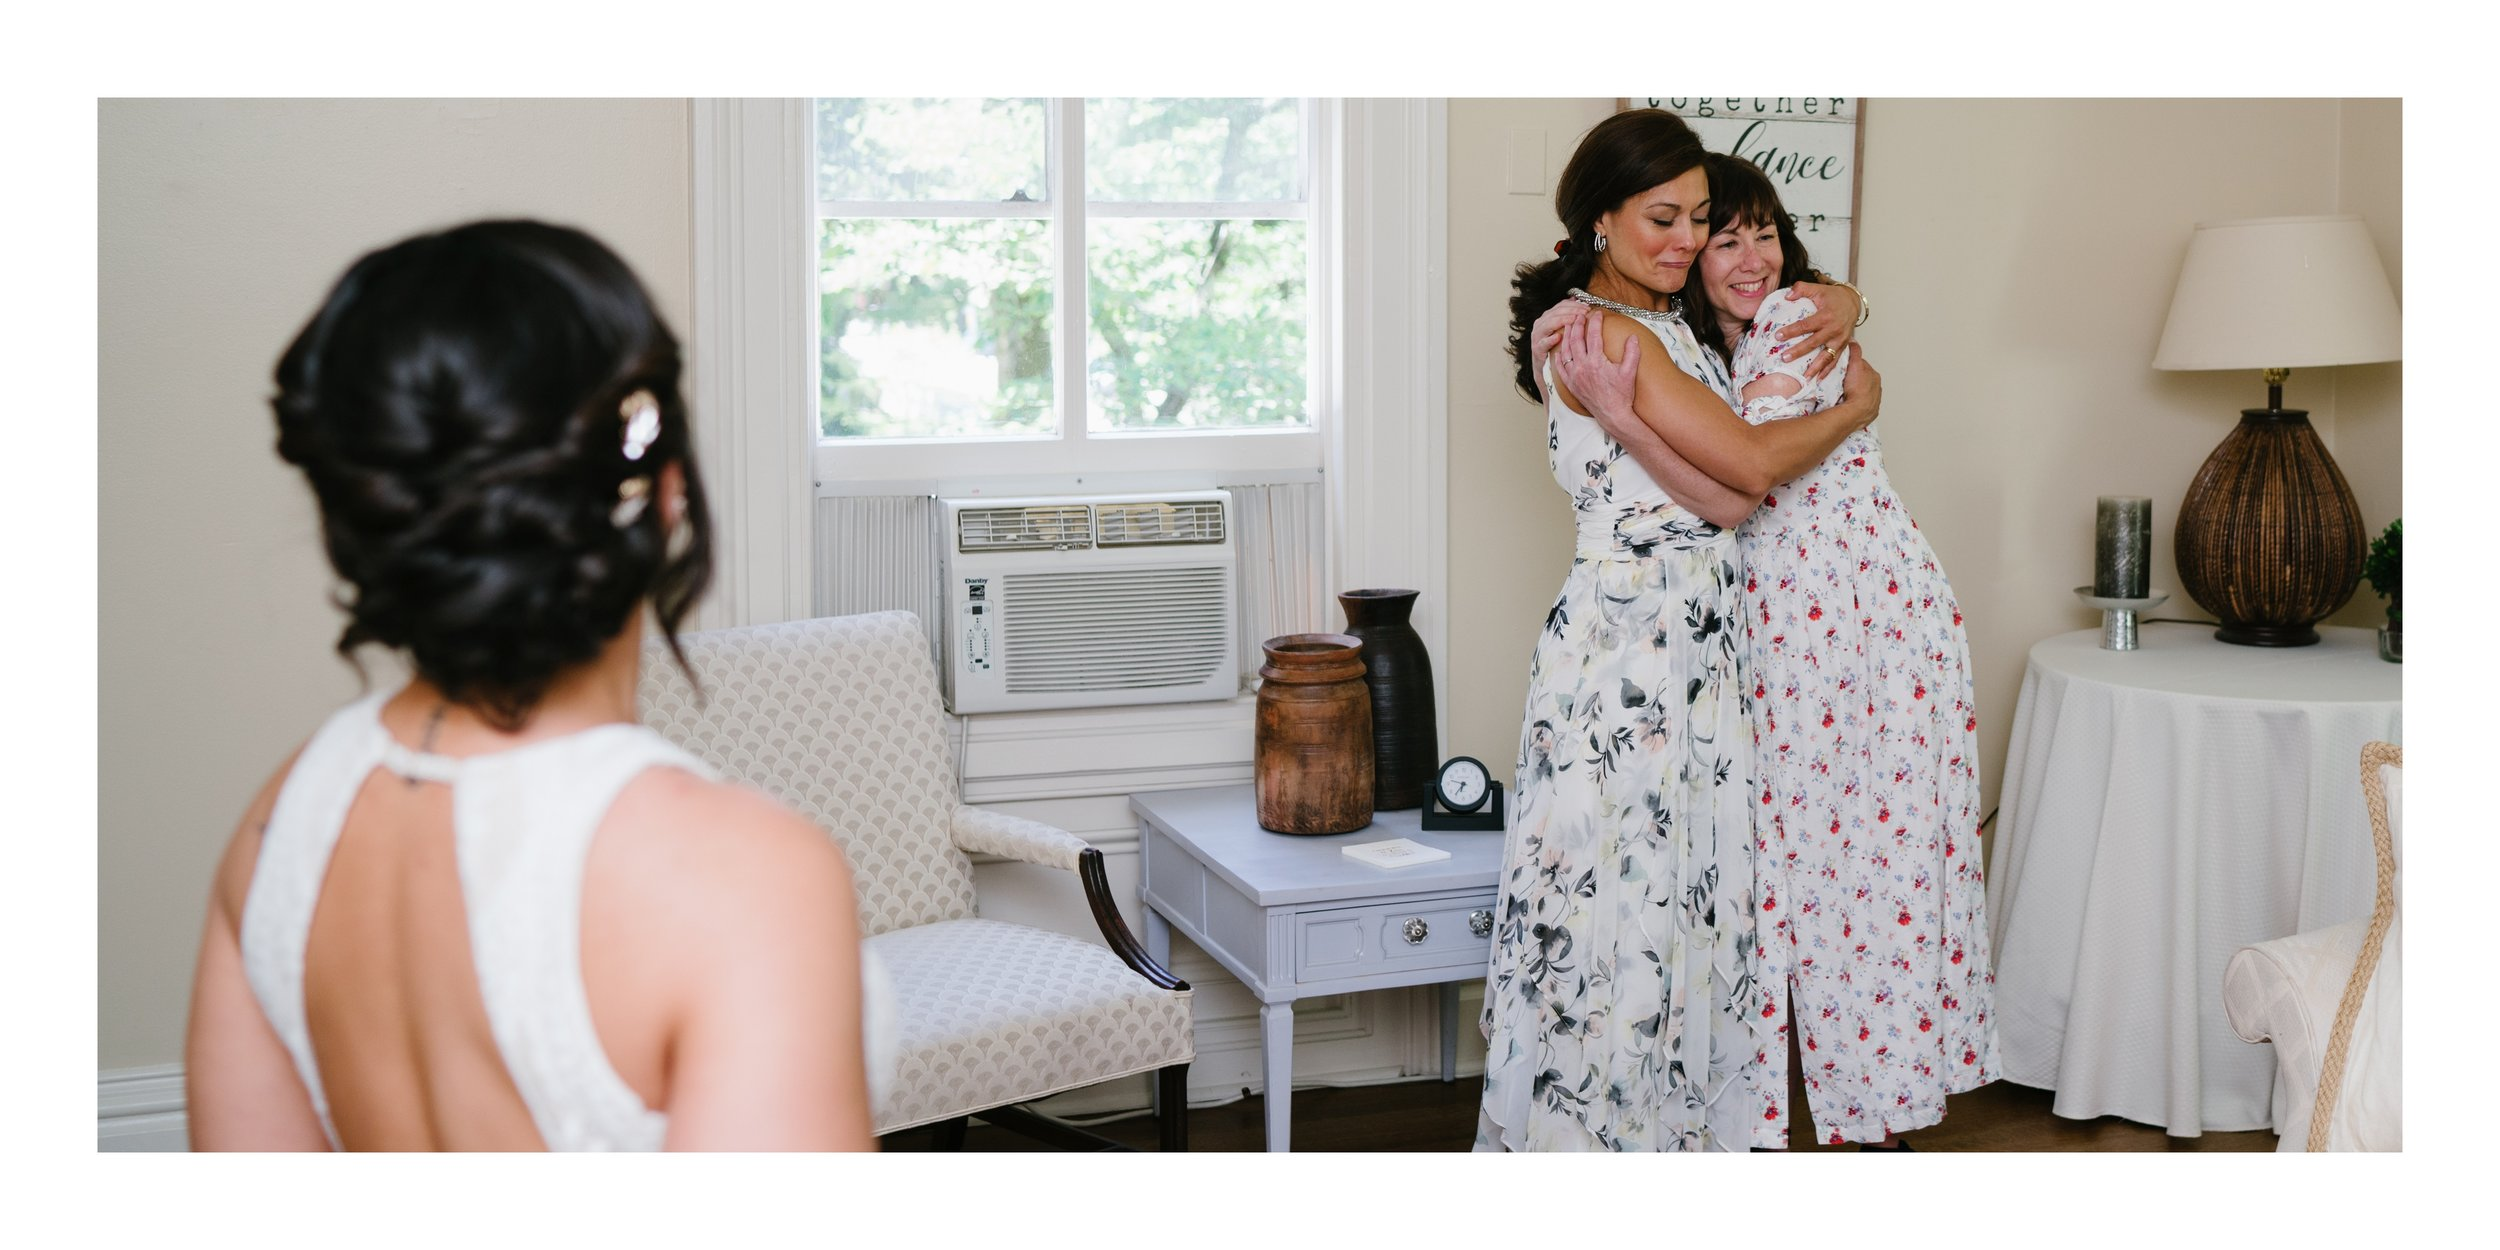 Wedding in Fairfield Connecticut at Burr Mansion